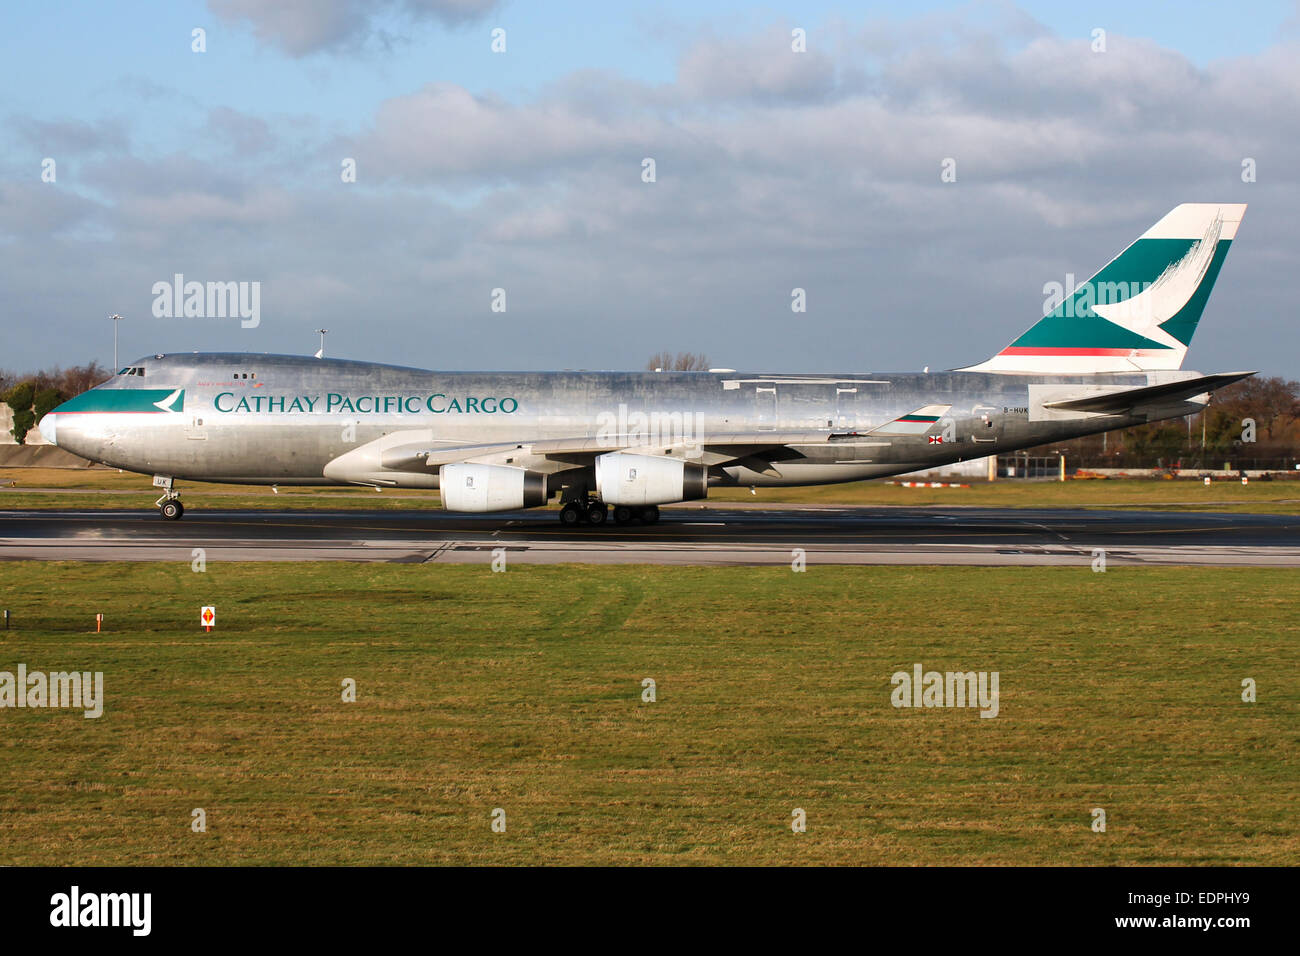 Cathay Pacific Cargo Boeing 747-400 accelerates down runway 23R at Manchester airport. - Stock Image